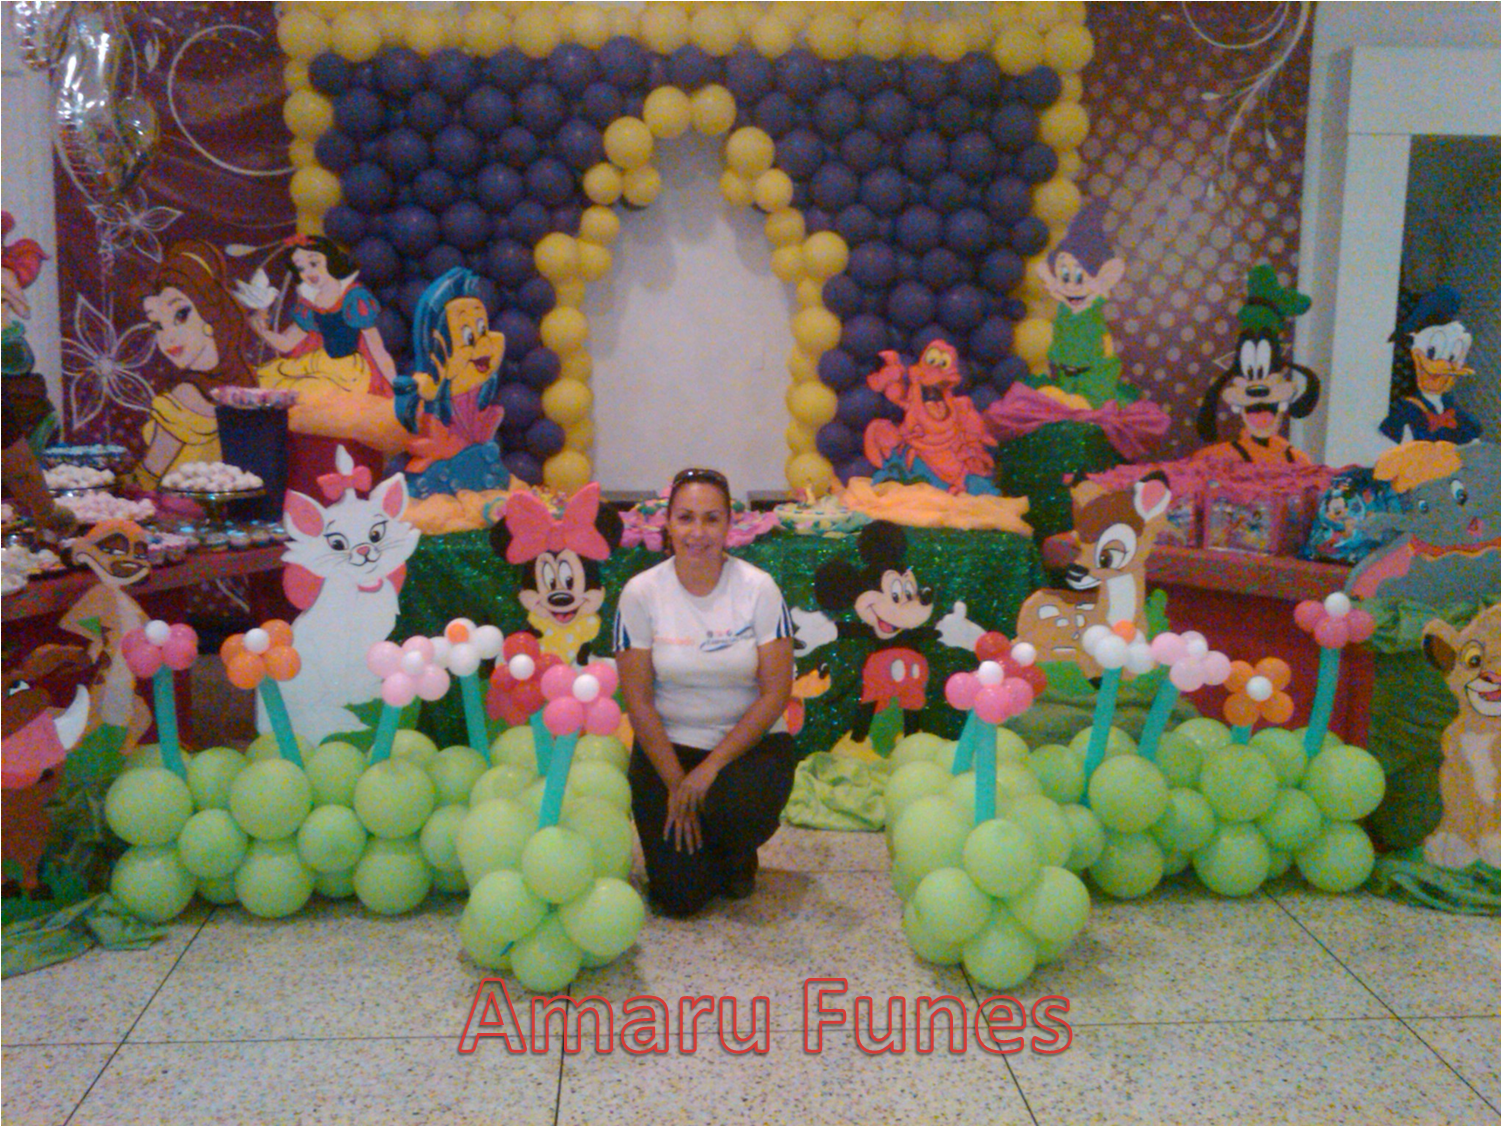 Decoracion personajes disney con globos y figuras en anime for Decoracion con globos